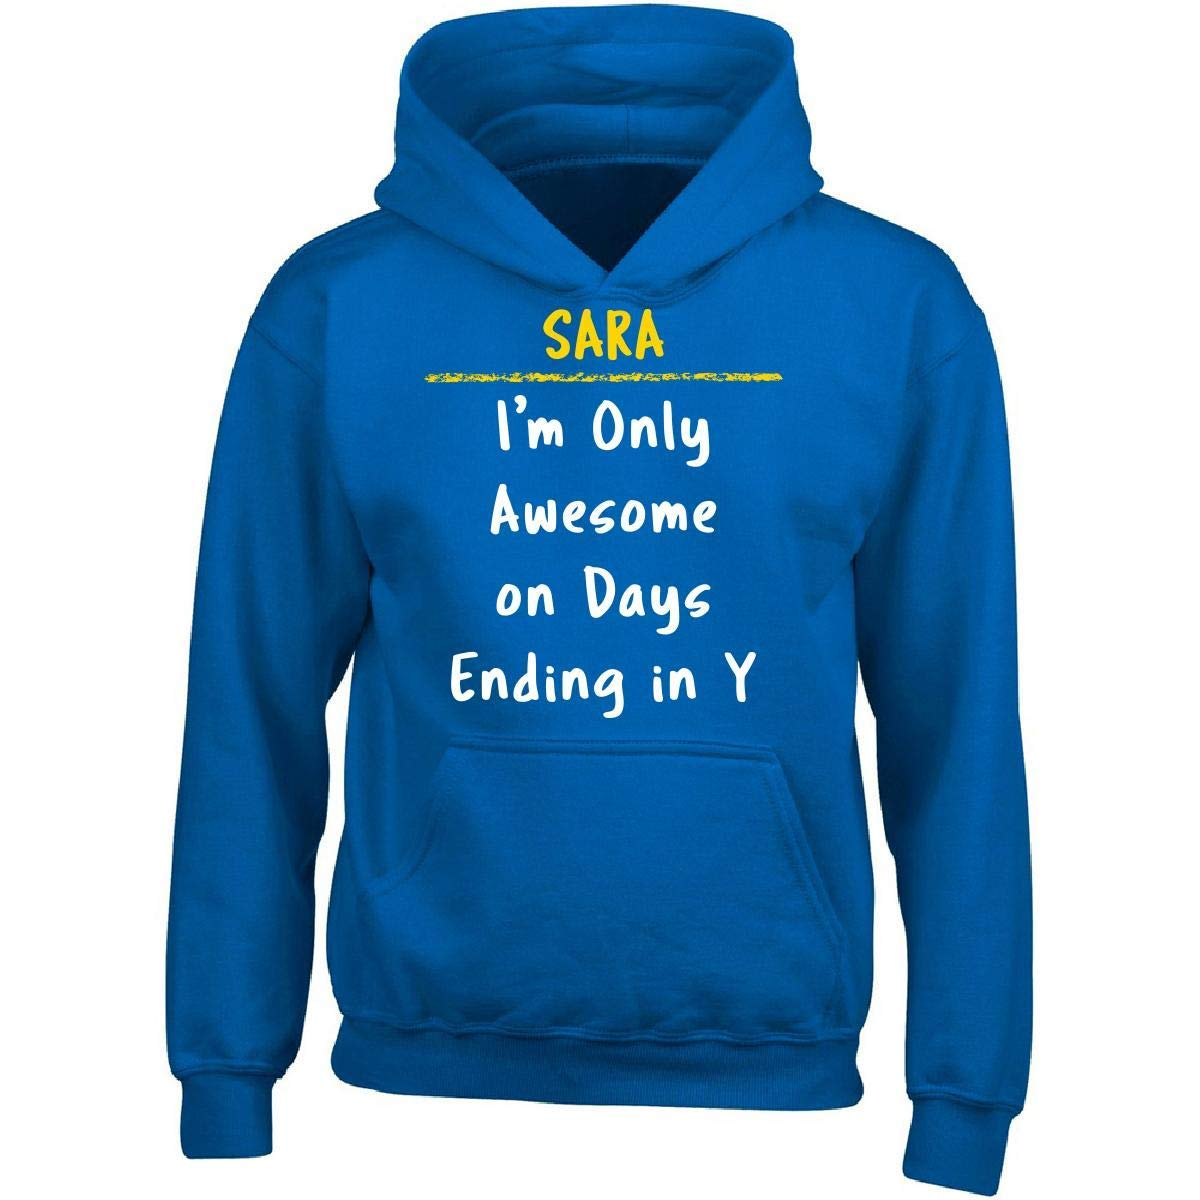 Sierra Goods Sara Awesome Sarcastic Funny Saying Name Office Gift - Adult Hoodie